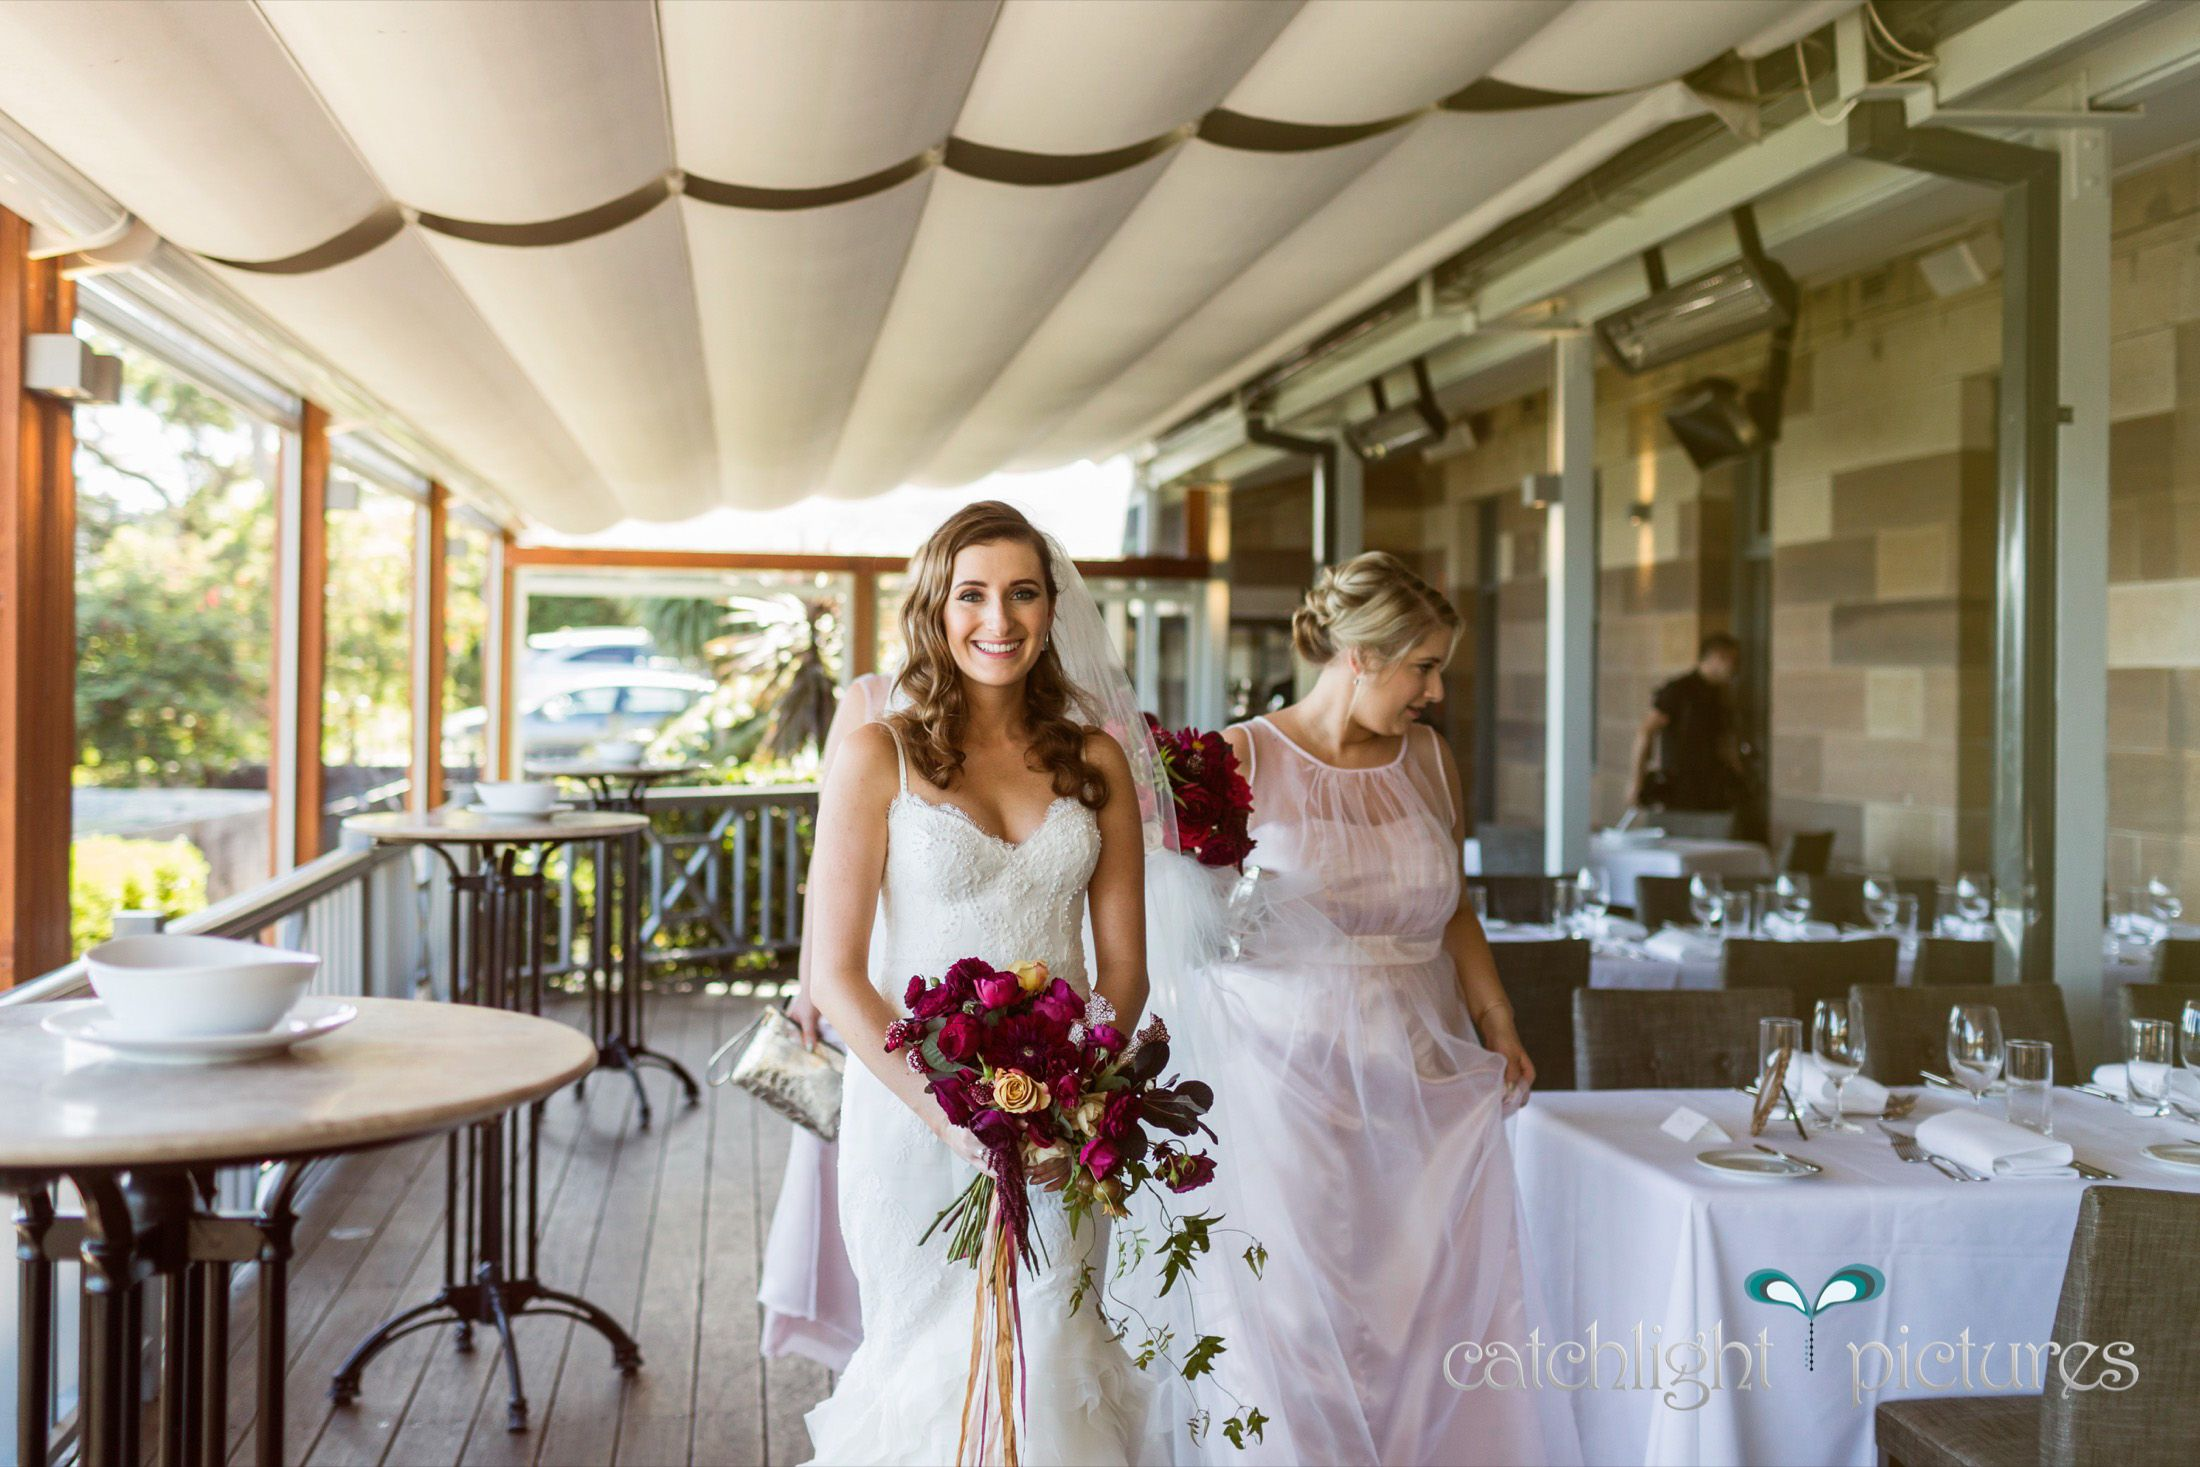 Nicole arrives at #Gunners Barracks, Mosman for her ceremony on Saturday. Love this wedding venue and the gorgeous outdoor decking area where guests enjoy one of the best views in Sydney